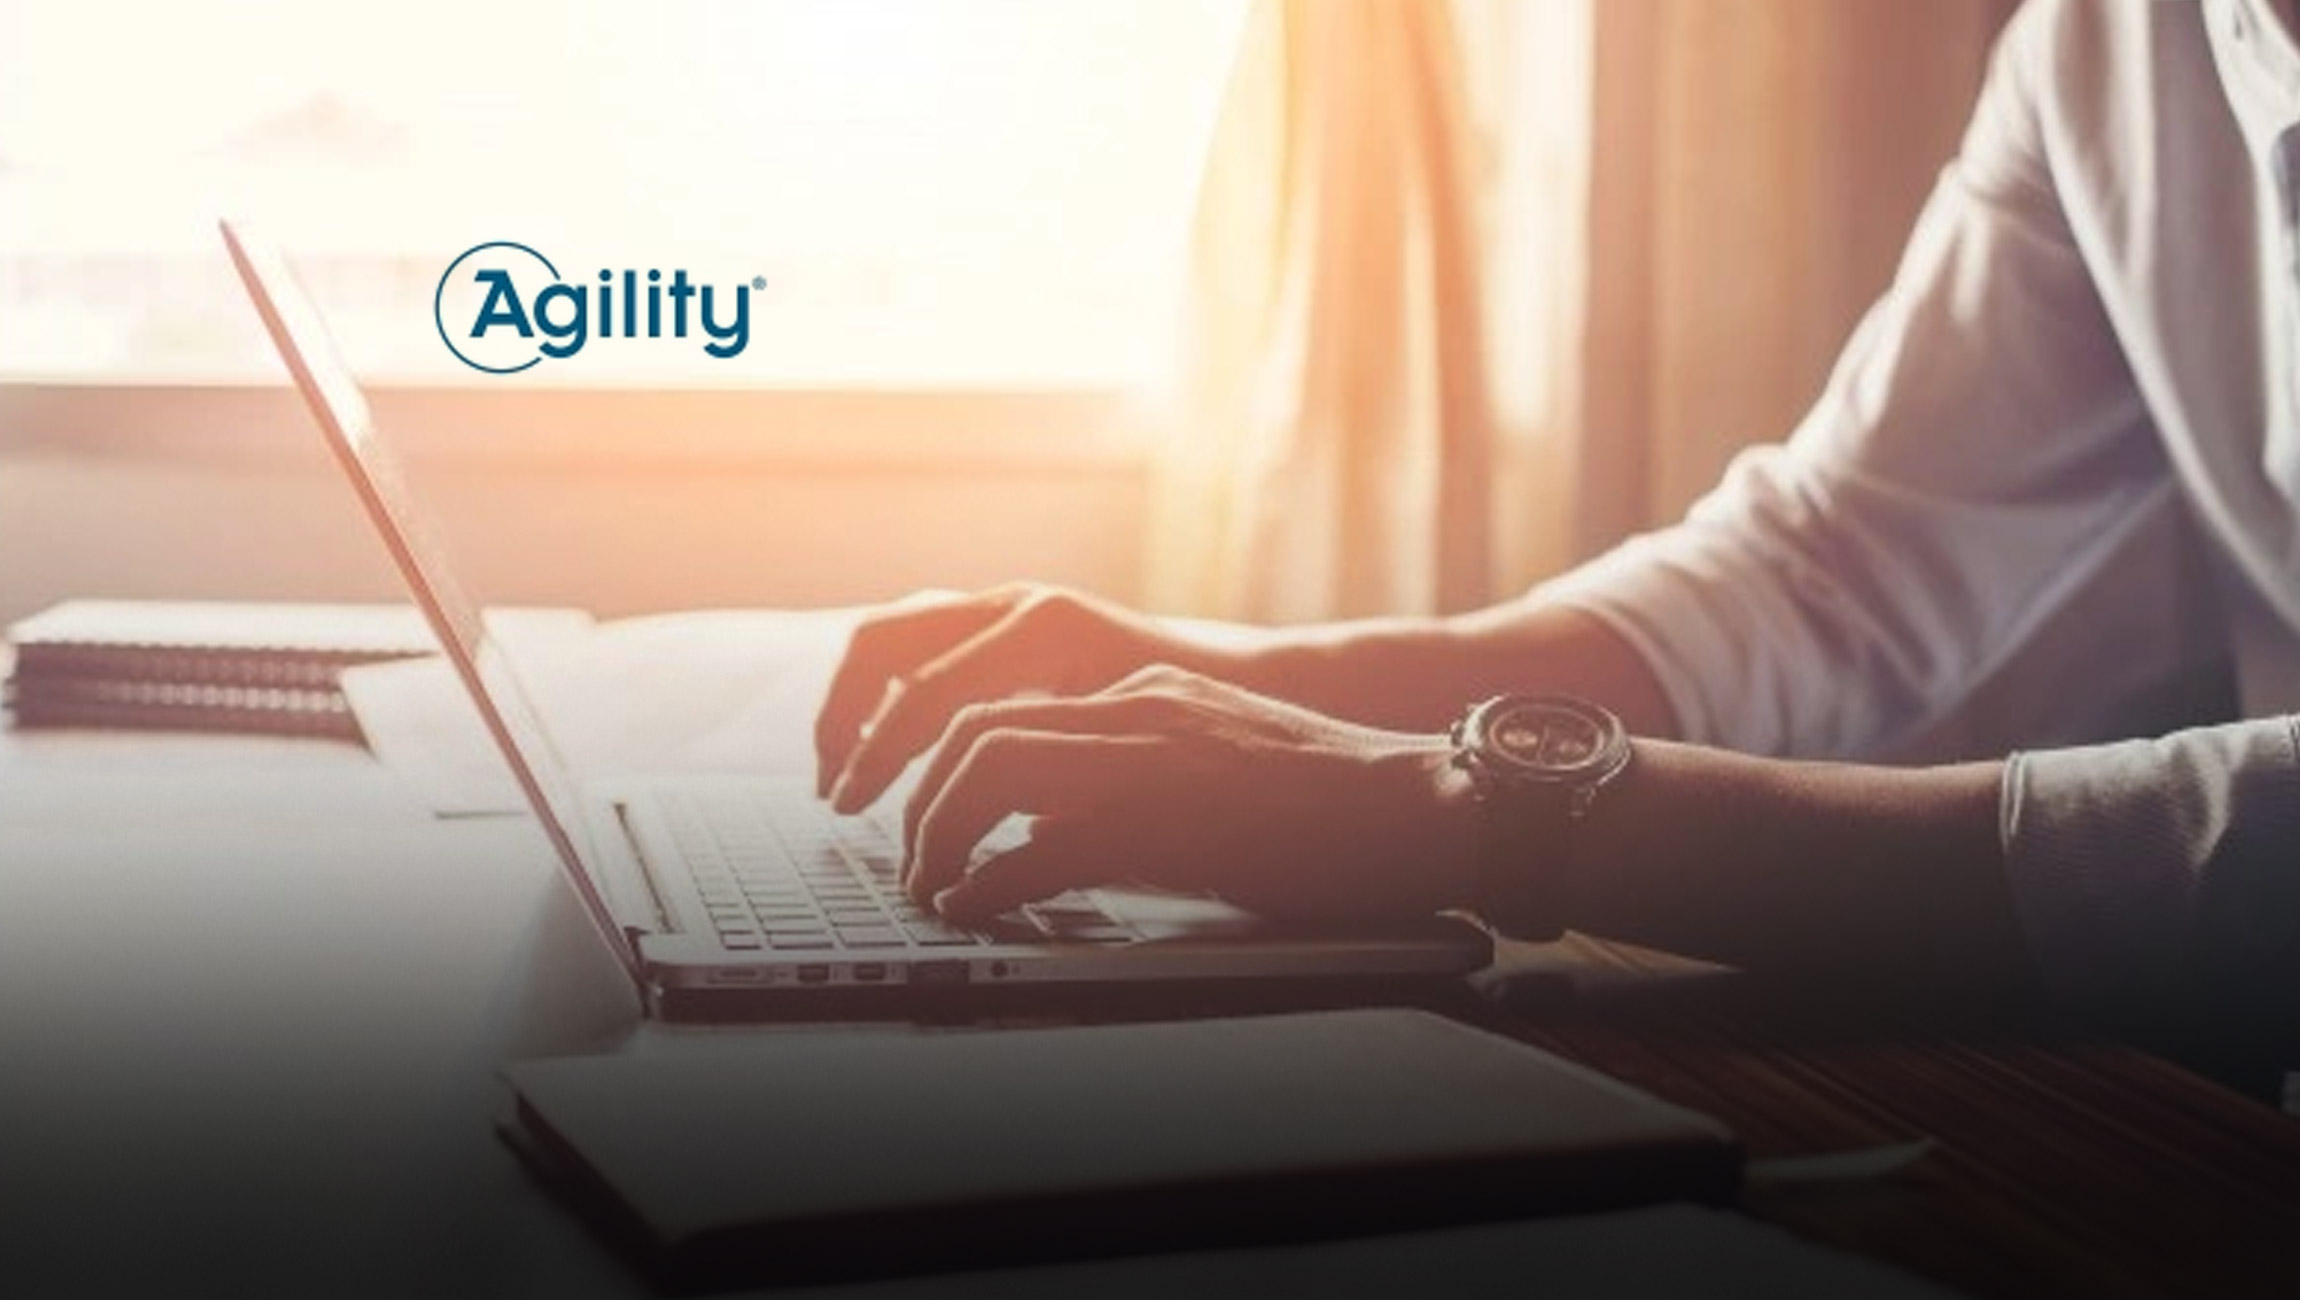 Agility Recovery Acquires RecoveryPlanner, a Gartner Leader for Business Continuity Management Program Solutions